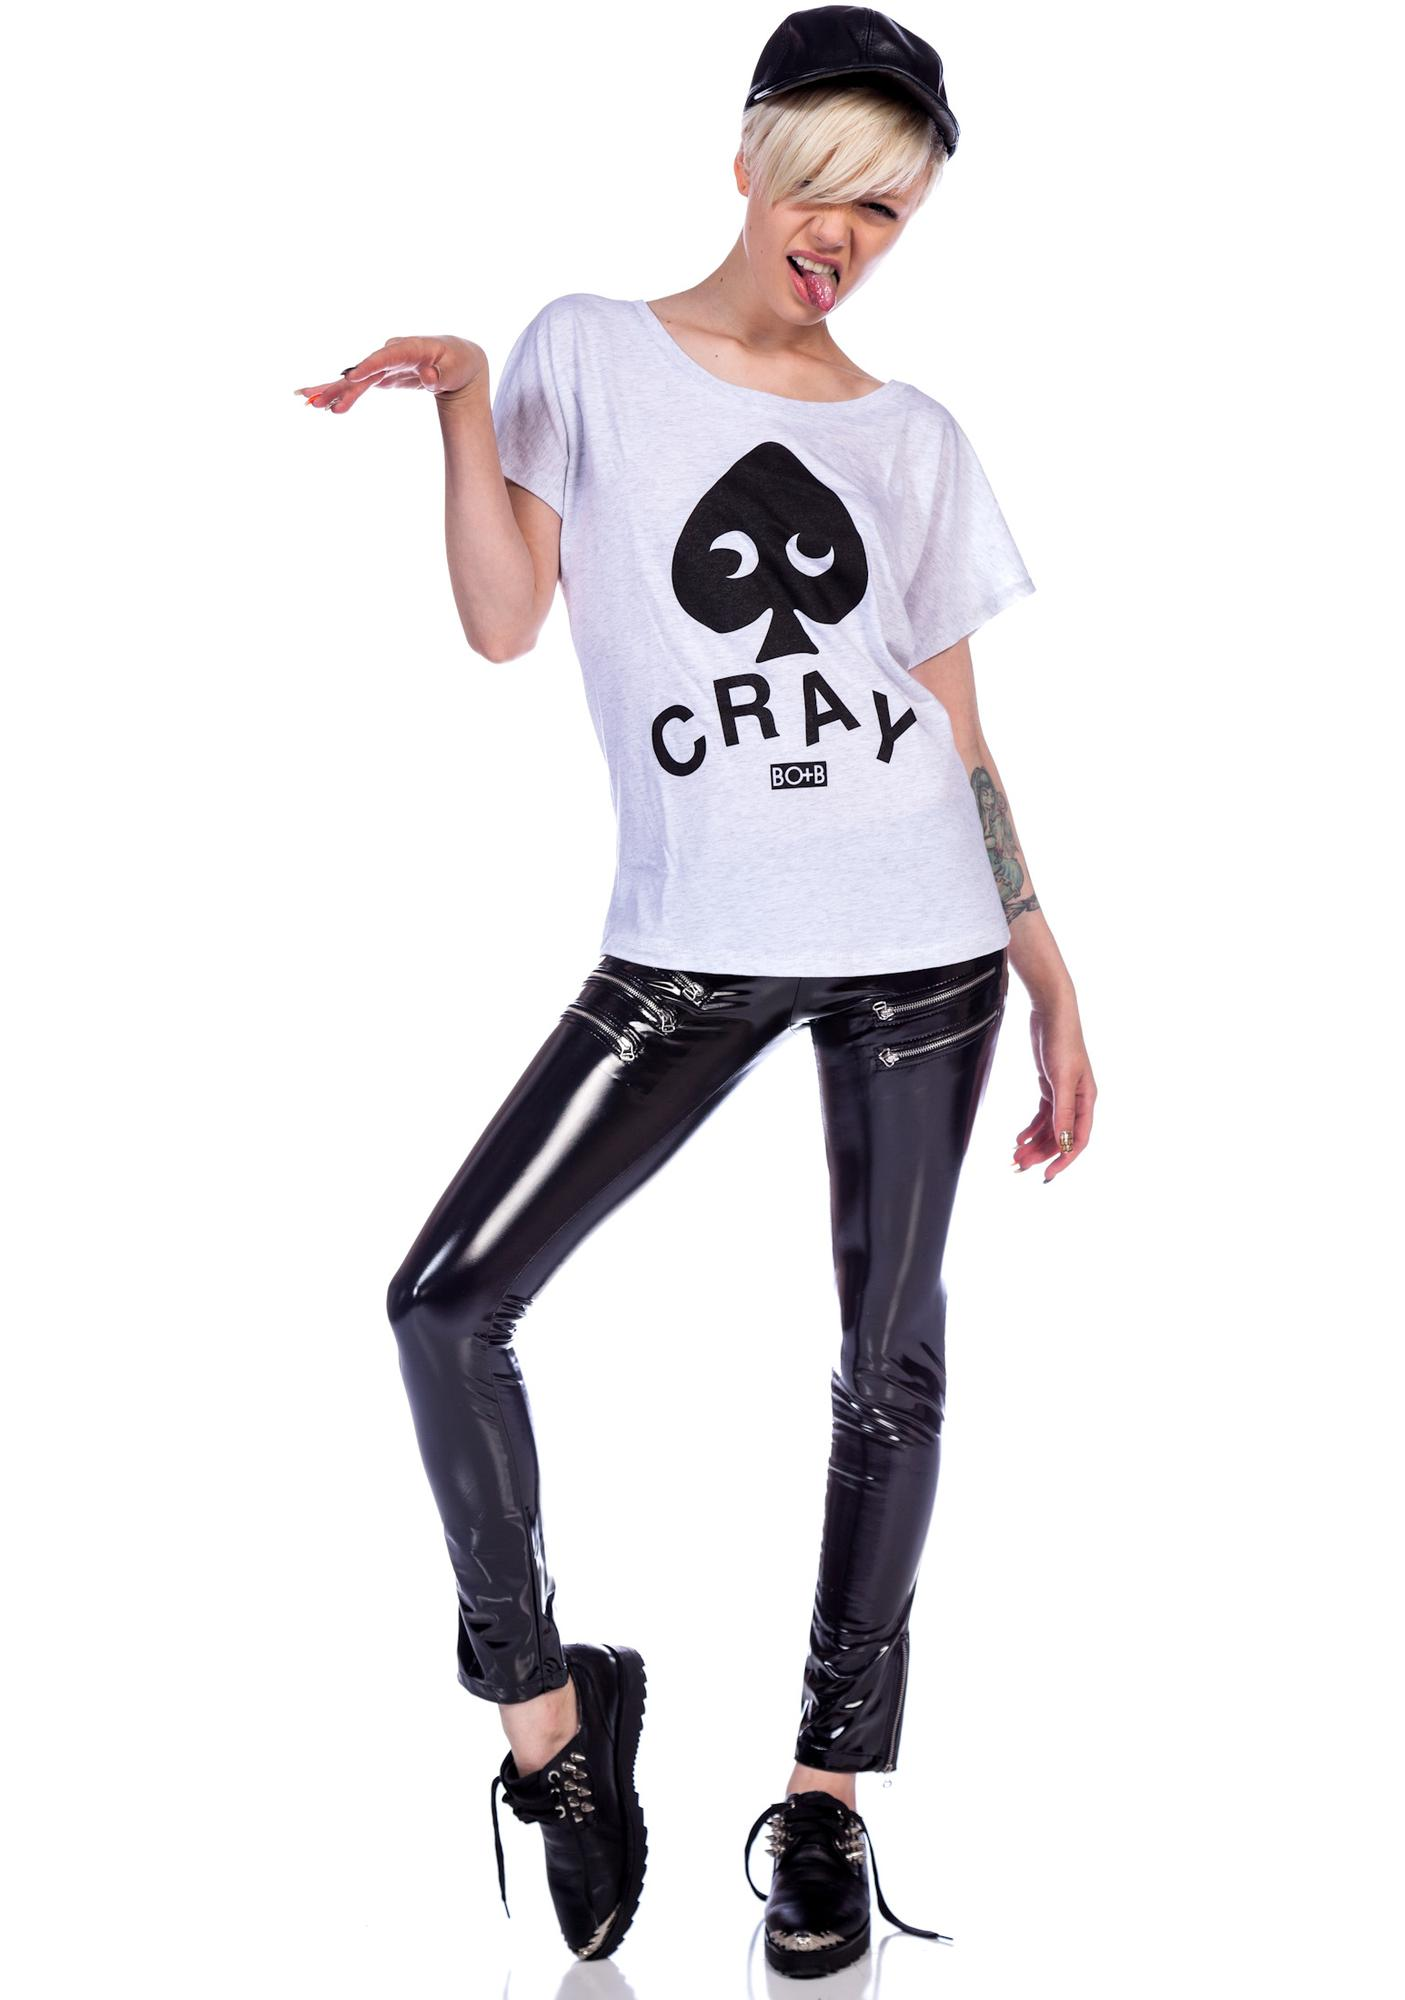 HLZBLZ x Belle of the Brawl So Cray Crop Tee